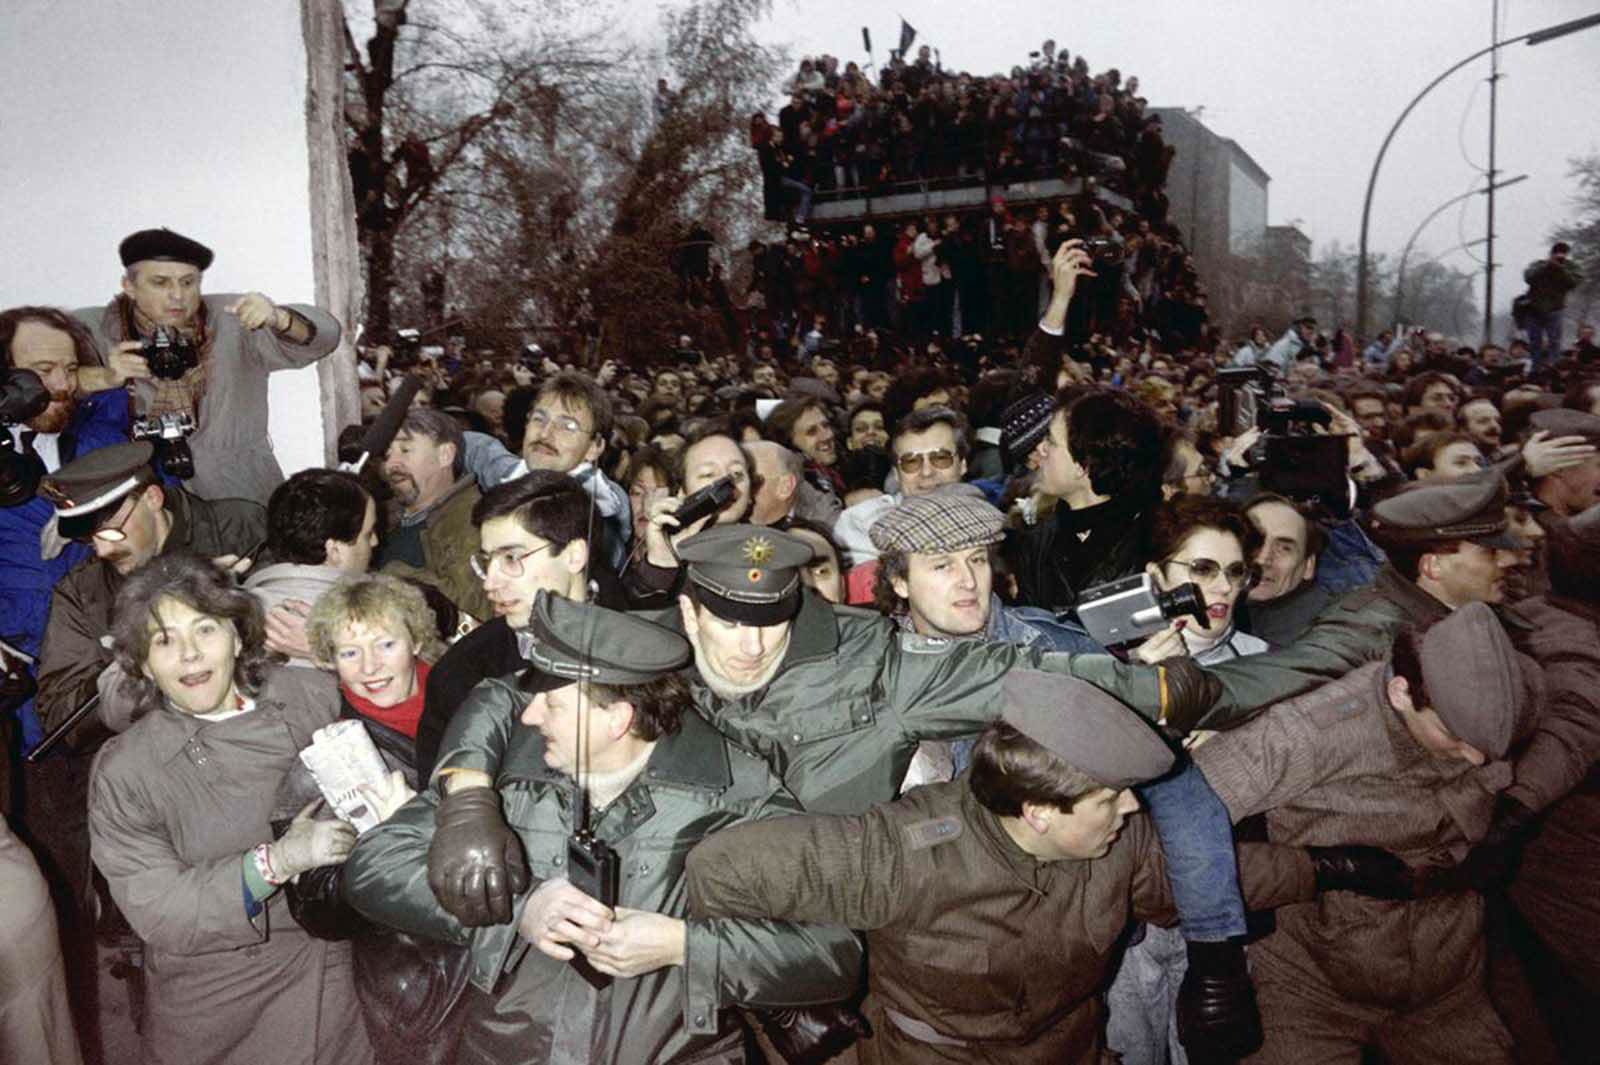 East and West German Police try to contain the crowd of East Berliners flowing through the recent opening made in the Berlin wall at Potsdamer Square, on November 12, 1989.